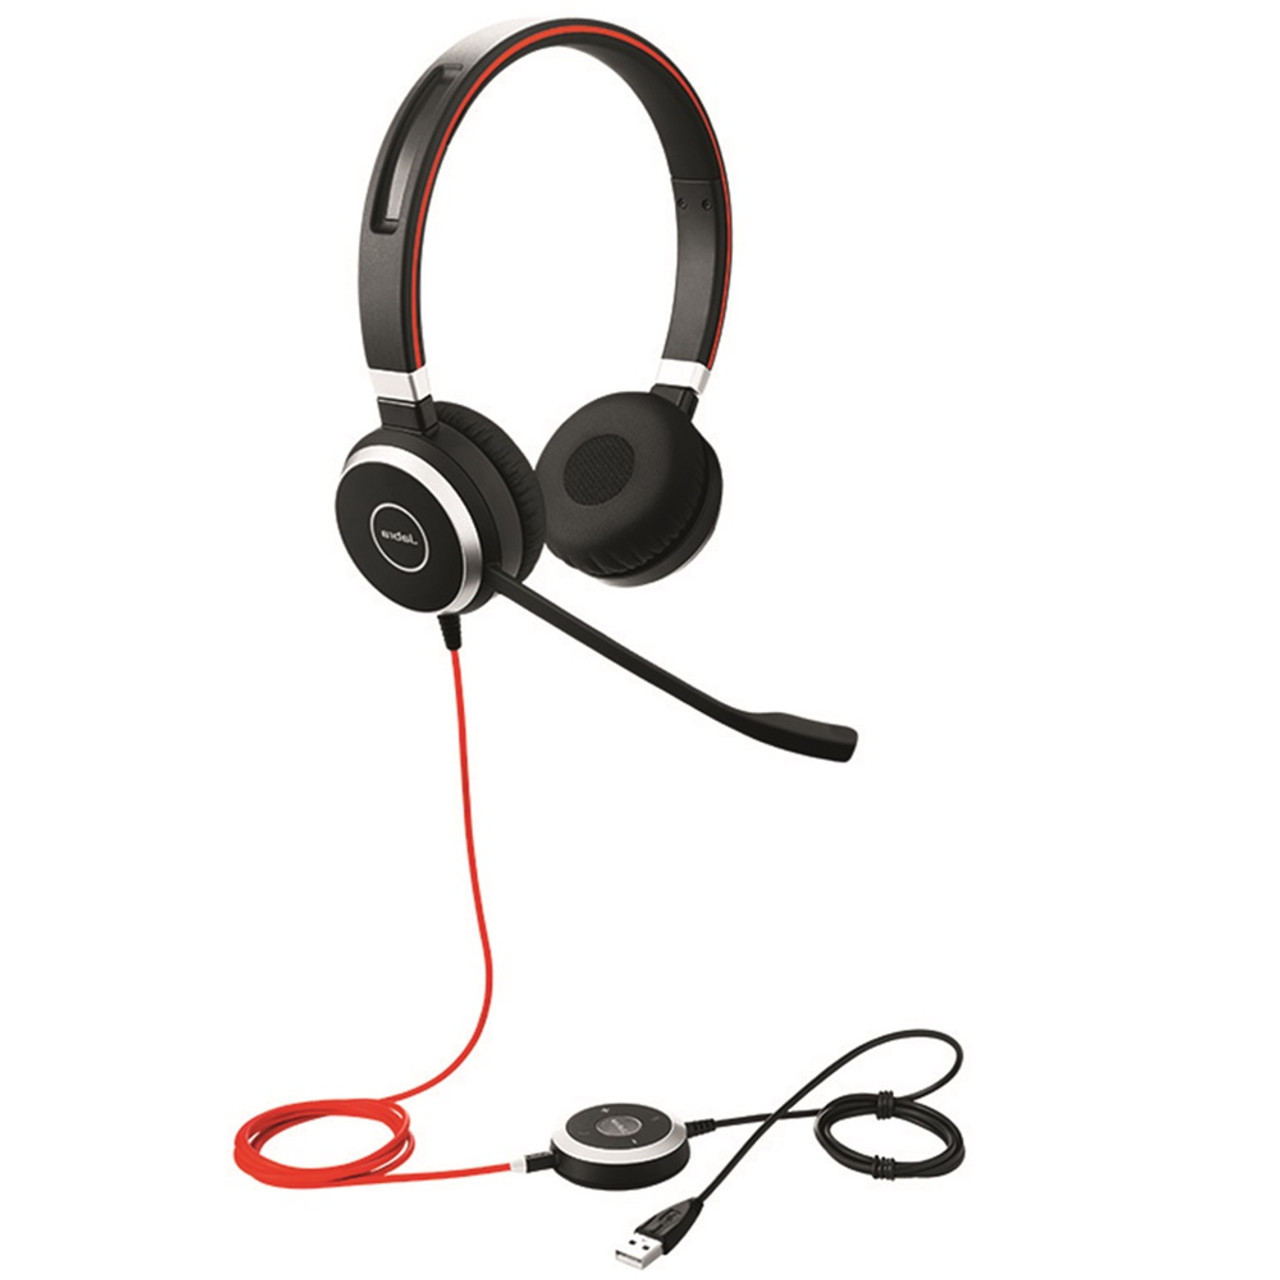 Jabra Evolve 40 Uc Stereo Usb Headset W Integrated Busy Indicator Certified For Unified Communications Voip Softphones Mobile Phones And Tablets 6399 829 209